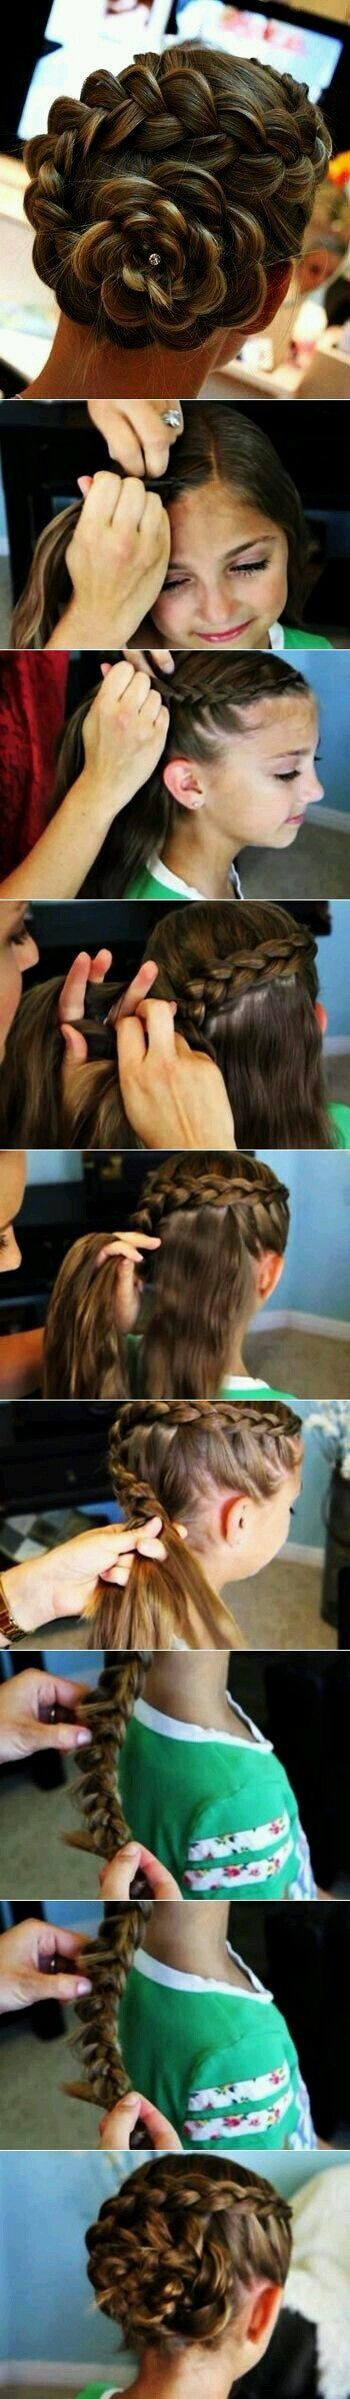 Pin by stacy on hairstyles pinterest gymnastics hair hair style